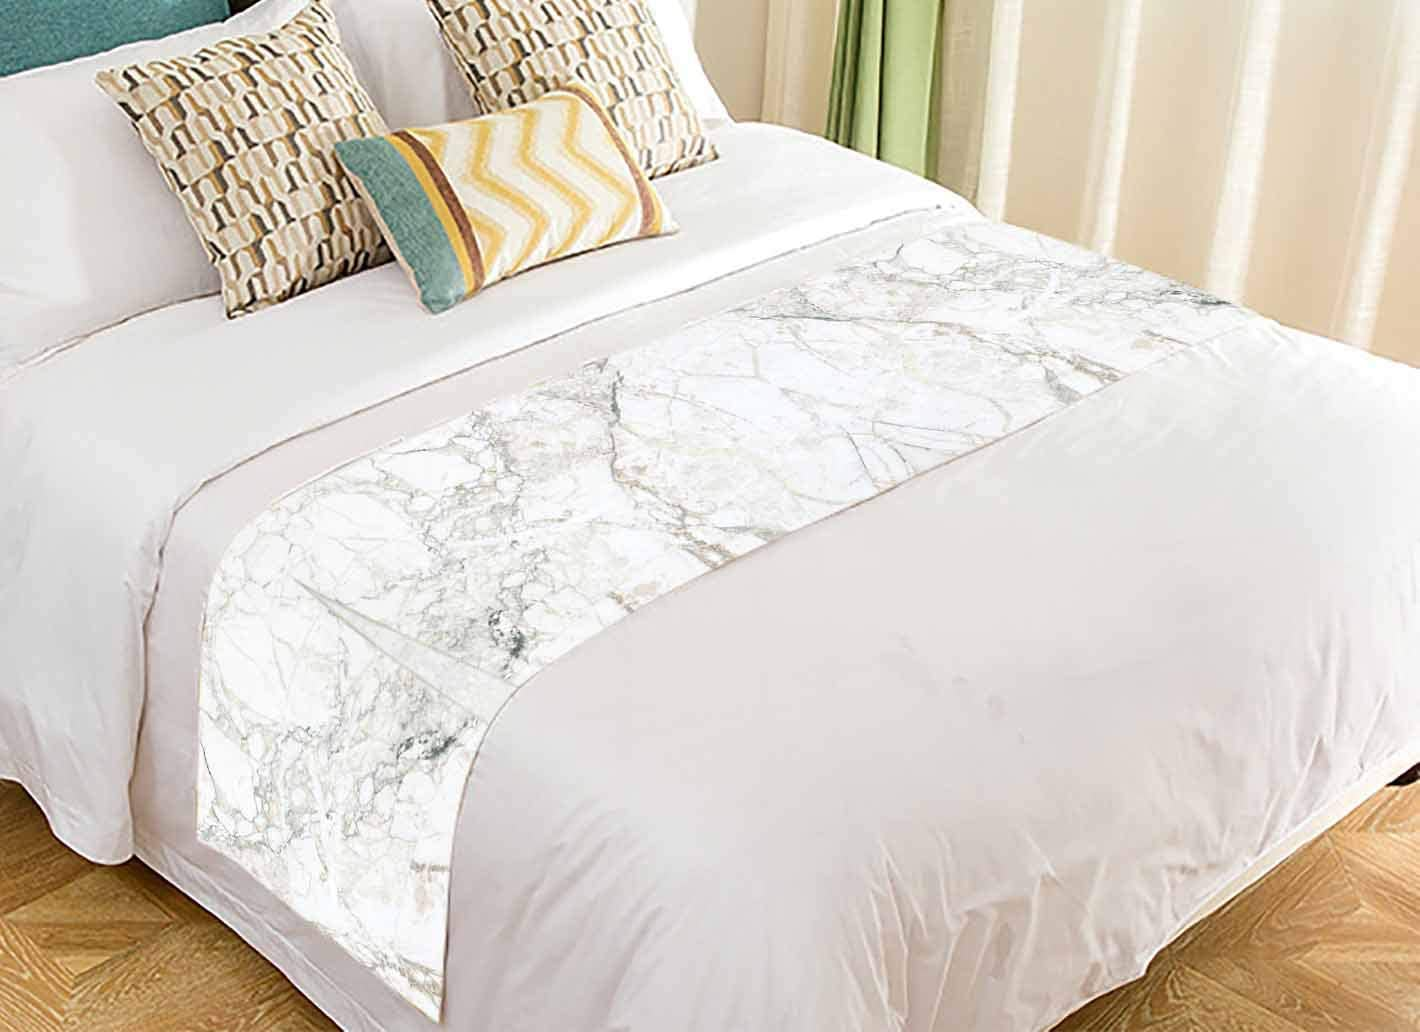 PKQWTM White Marble Texture Bed Runner Bedroom Bedding Decor Bedding Scarf Size 20x95 inches